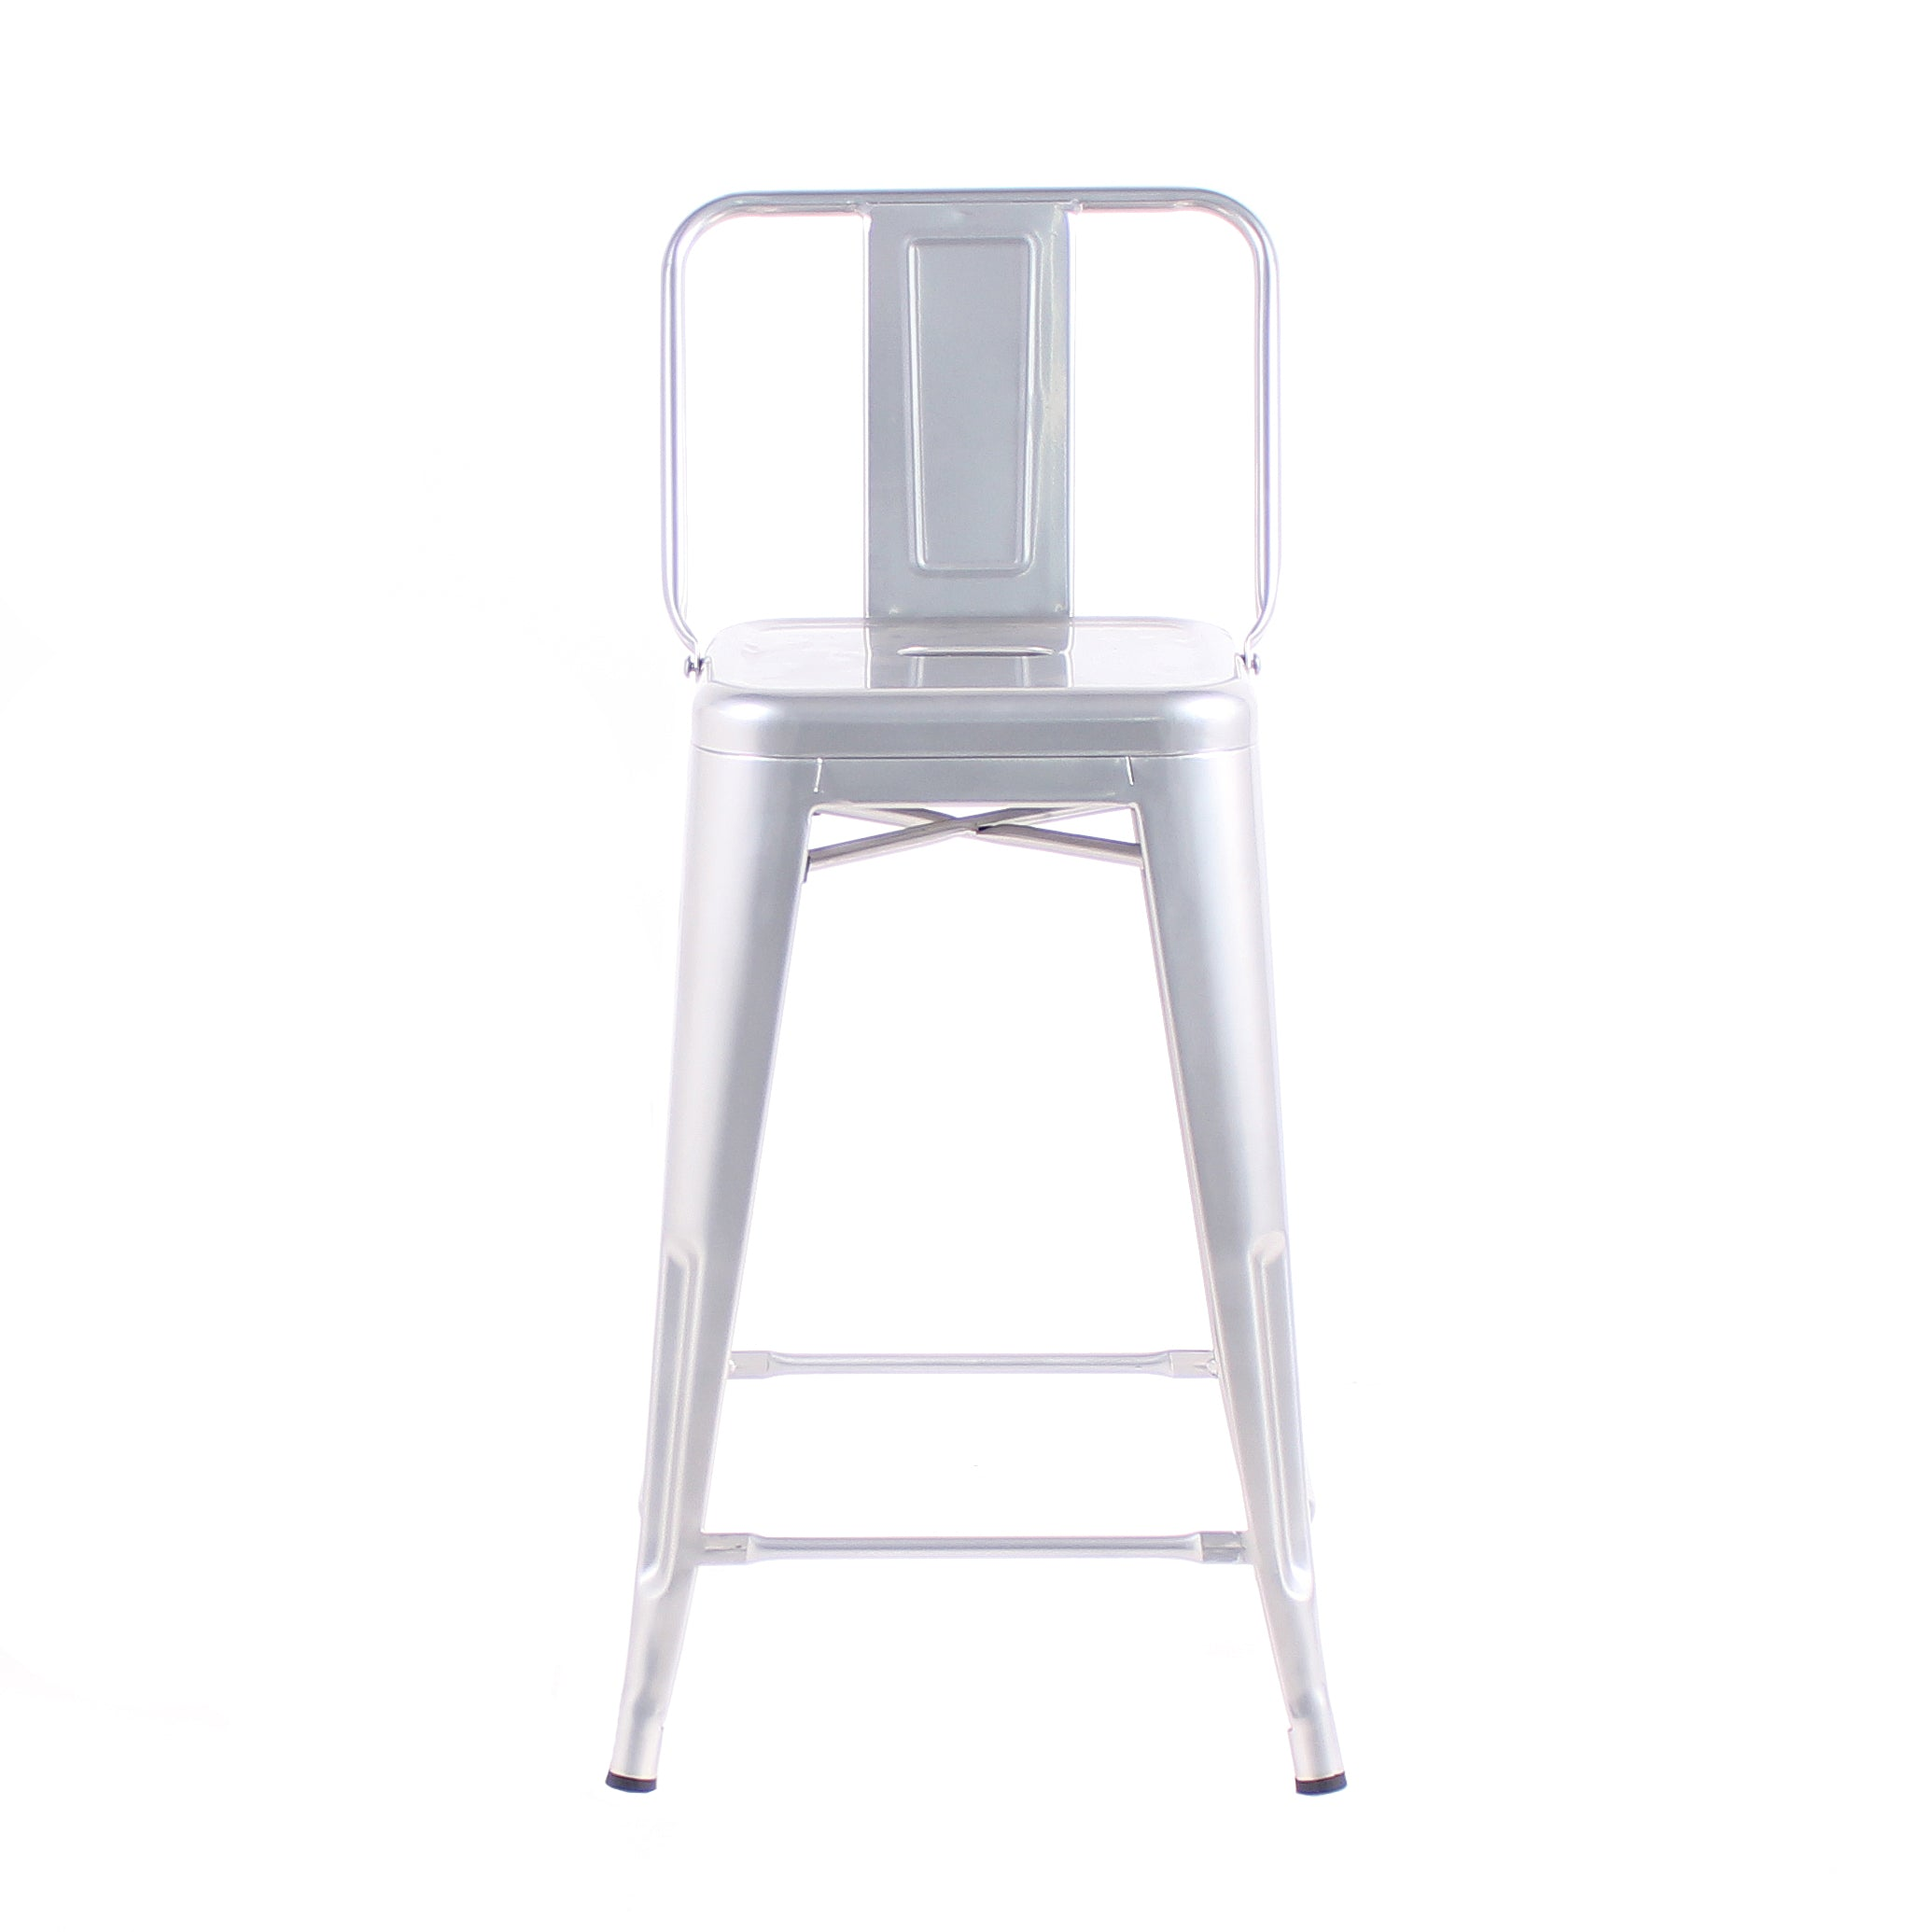 Surprising Buschman Set Of 4 Grey 24 Inch Counter Height Metal Bar Stools With Medium Back Indoor Outdoor Forskolin Free Trial Chair Design Images Forskolin Free Trialorg